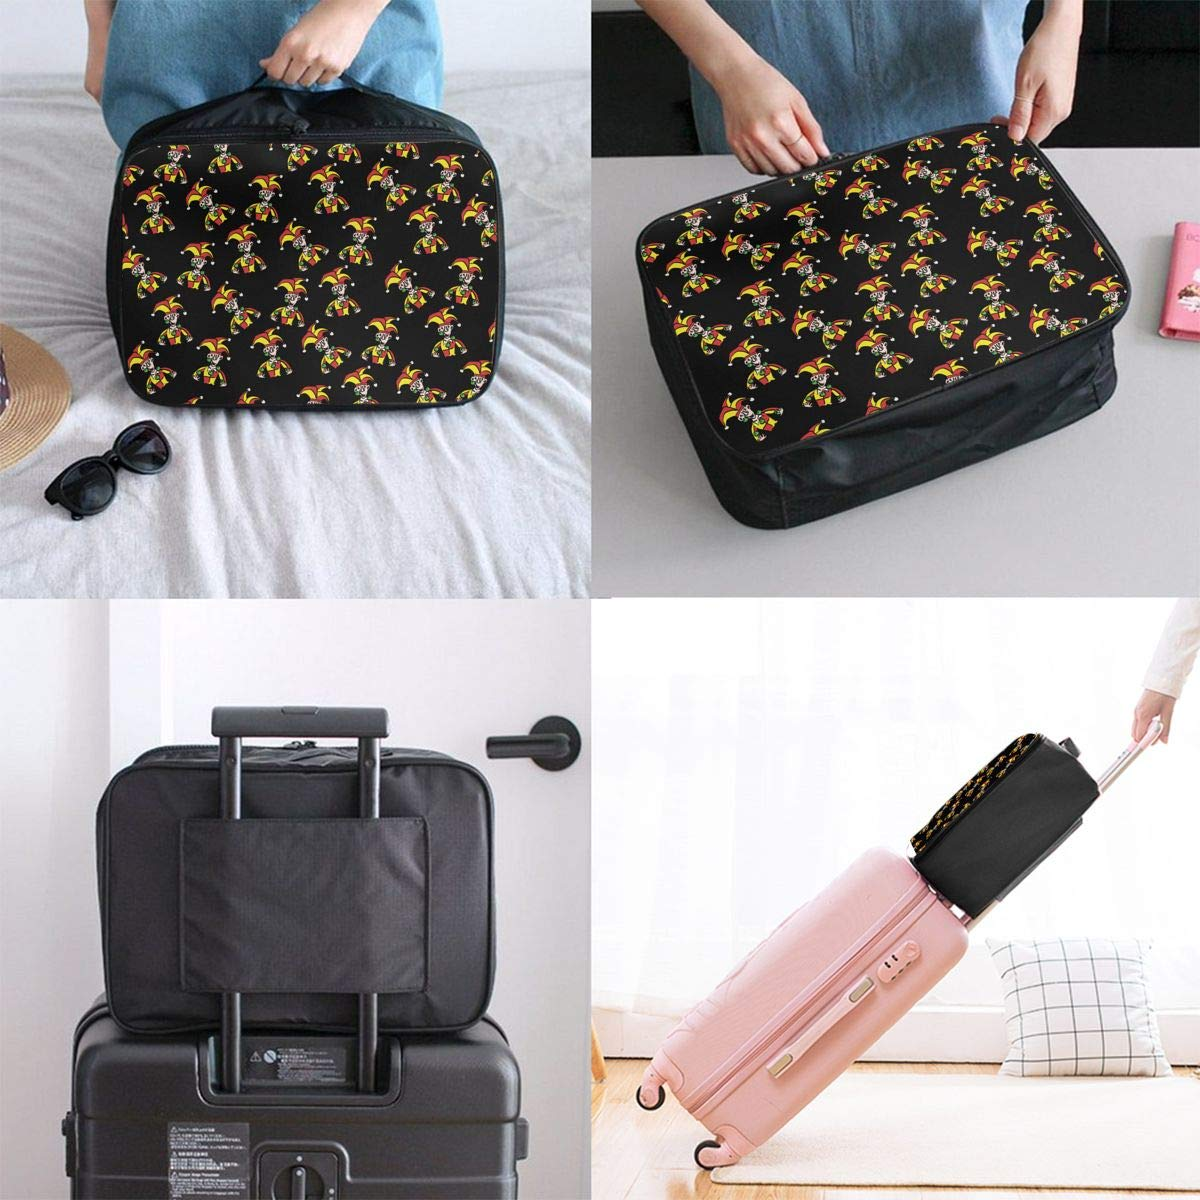 YueLJB Funny Clown Juggler Lightweight Large Capacity Portable Luggage Bag Travel Duffel Bag Storage Carry Luggage Duffle Tote Bag